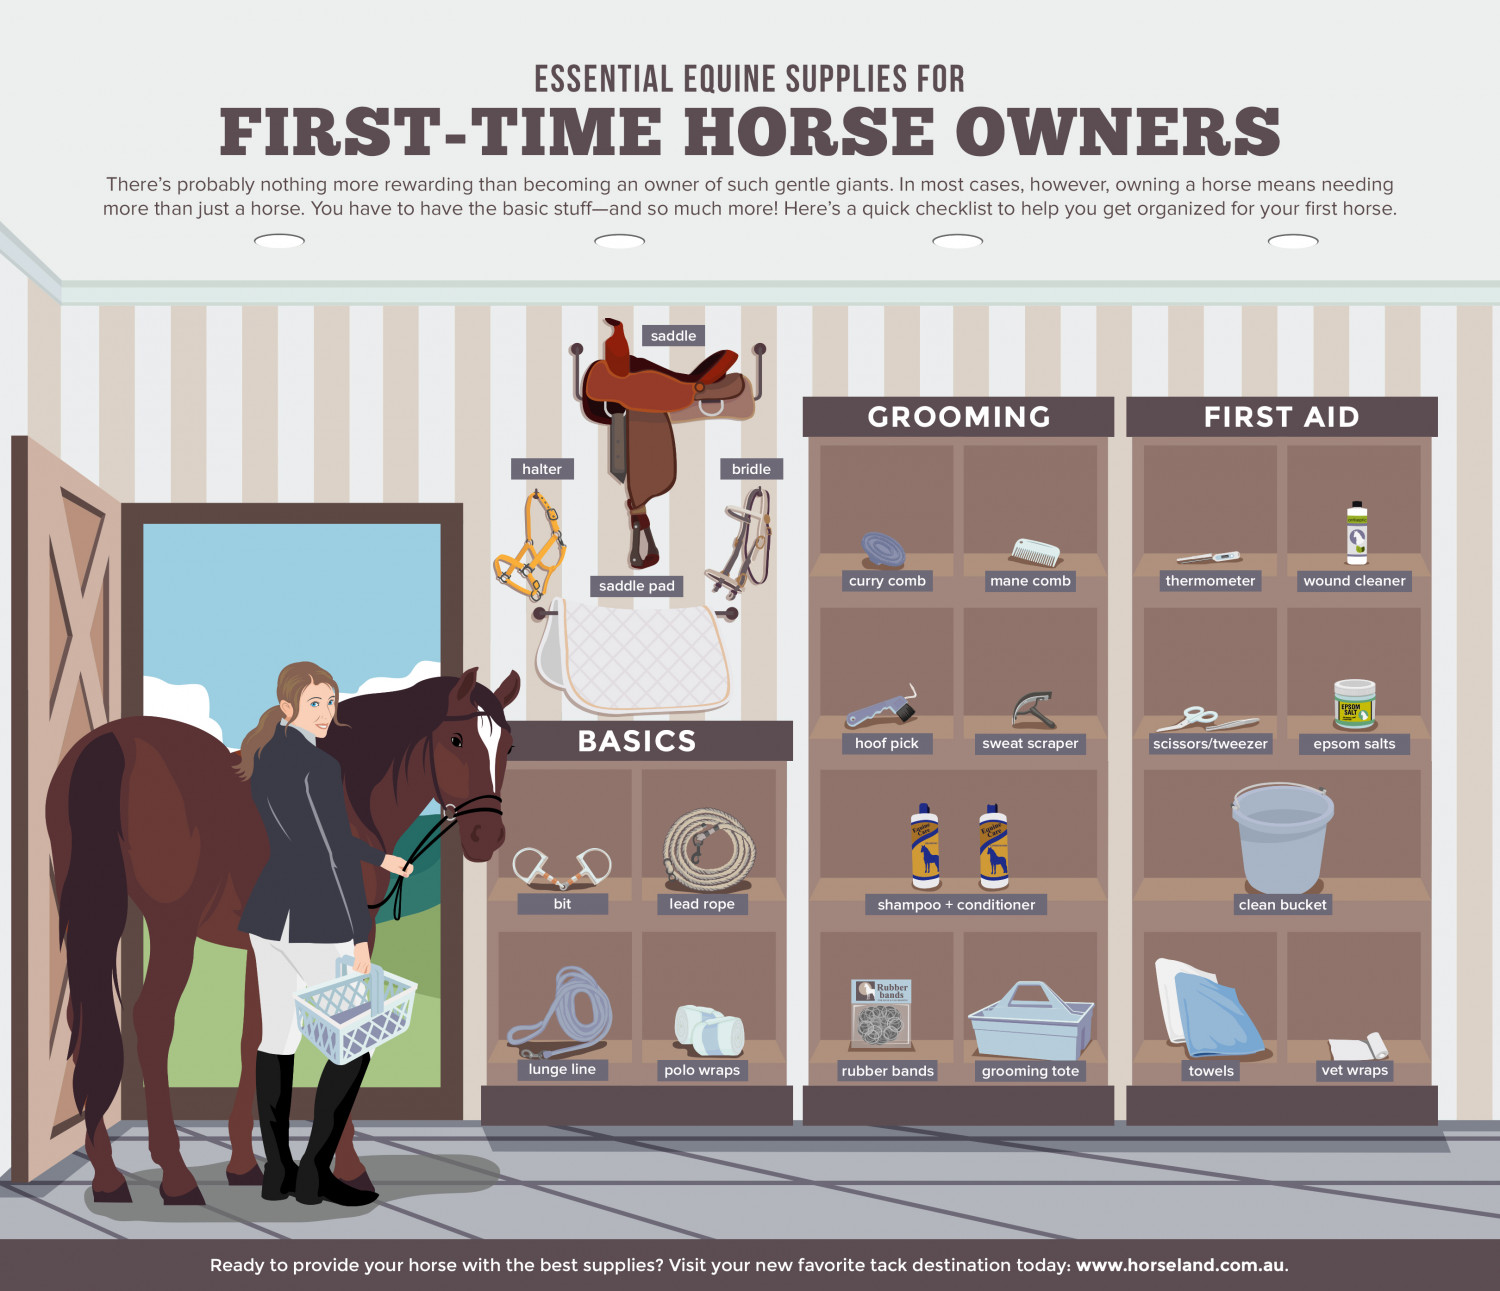 Essential Equine Supplies For First-Time Horse Owners Infographic